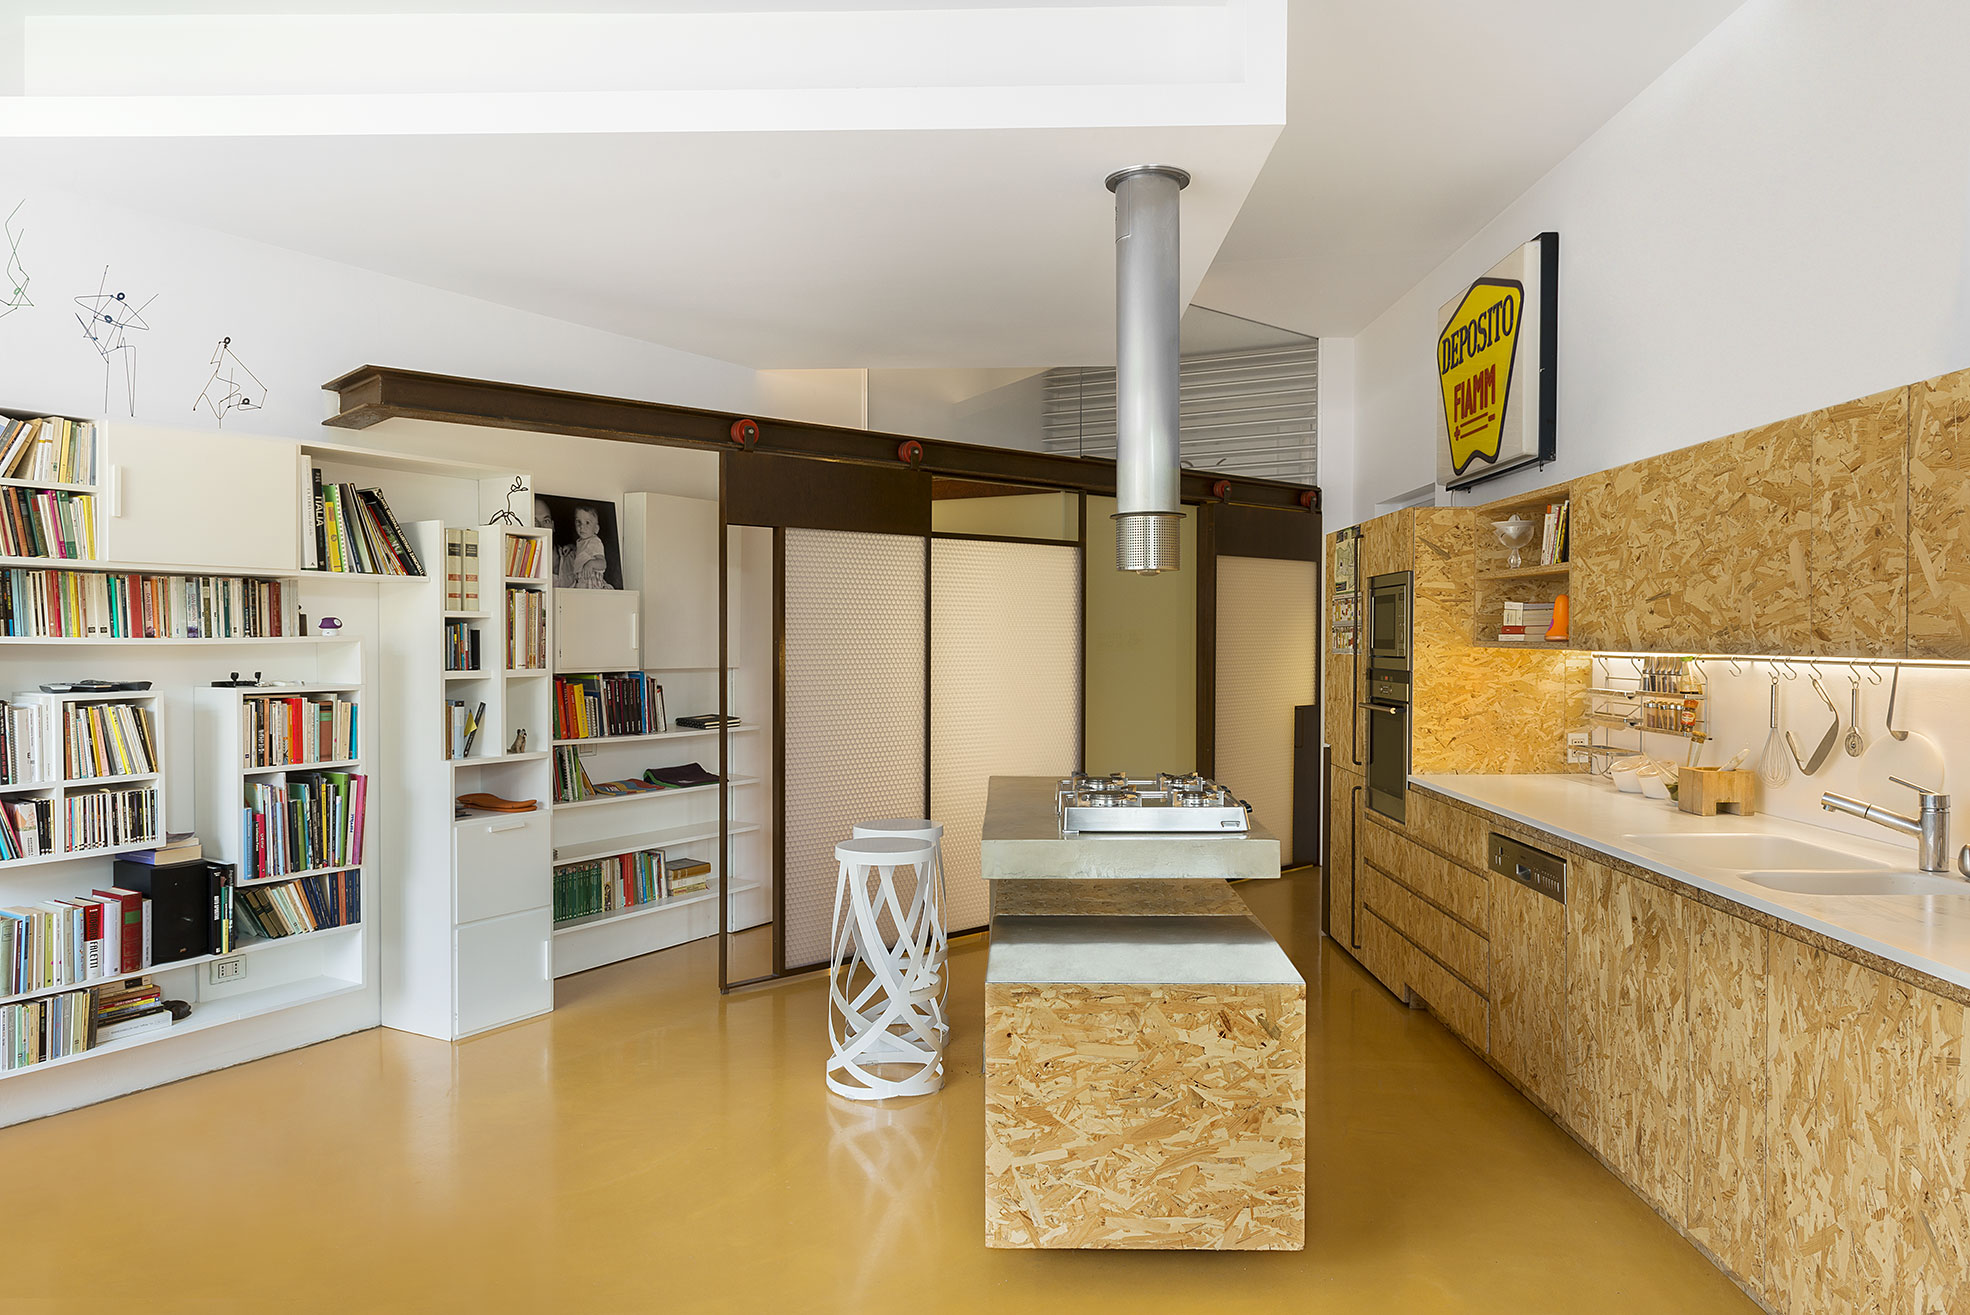 Wooden Kitchen in the studio Alessio Riva Architect Photographer Maria Teresa Furnari